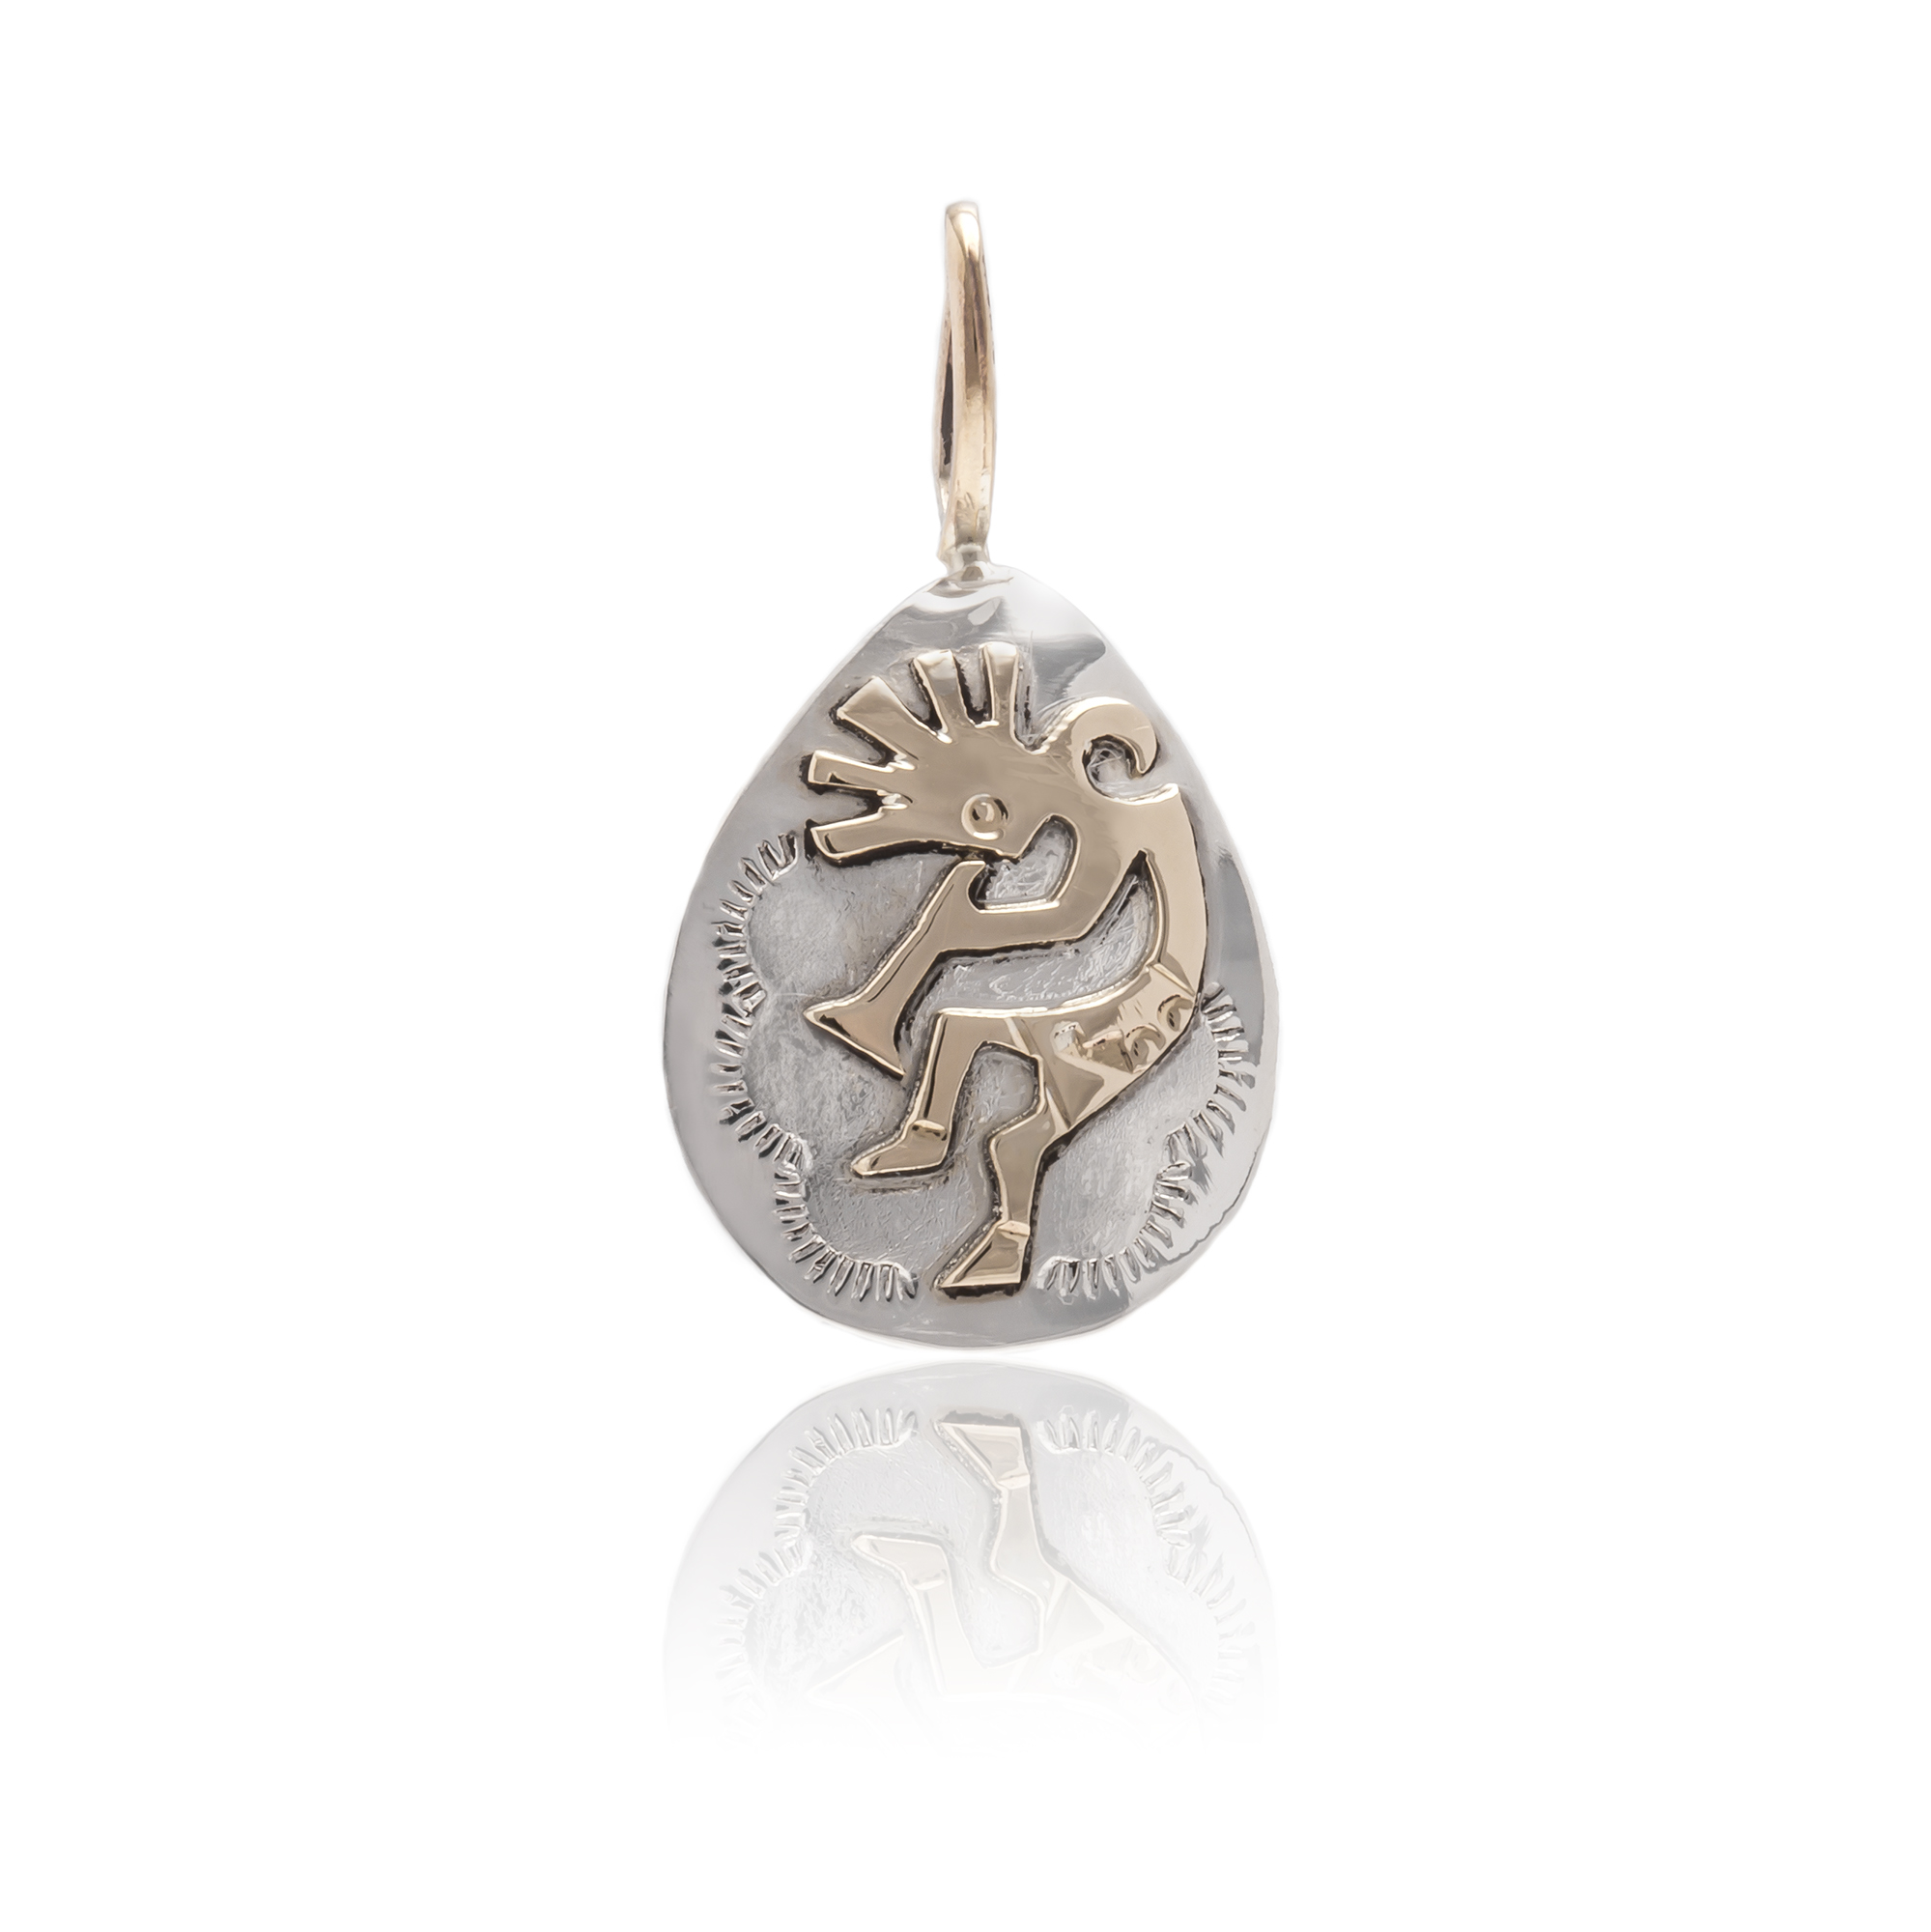 Kokopelli 12kt Gold Filled and .925 Sterling Silver Certified Authentic Handmade Very Delicate Navajo Native American Pendant 24472 All Products NB151219031543 24472 (by LomaSiiva)